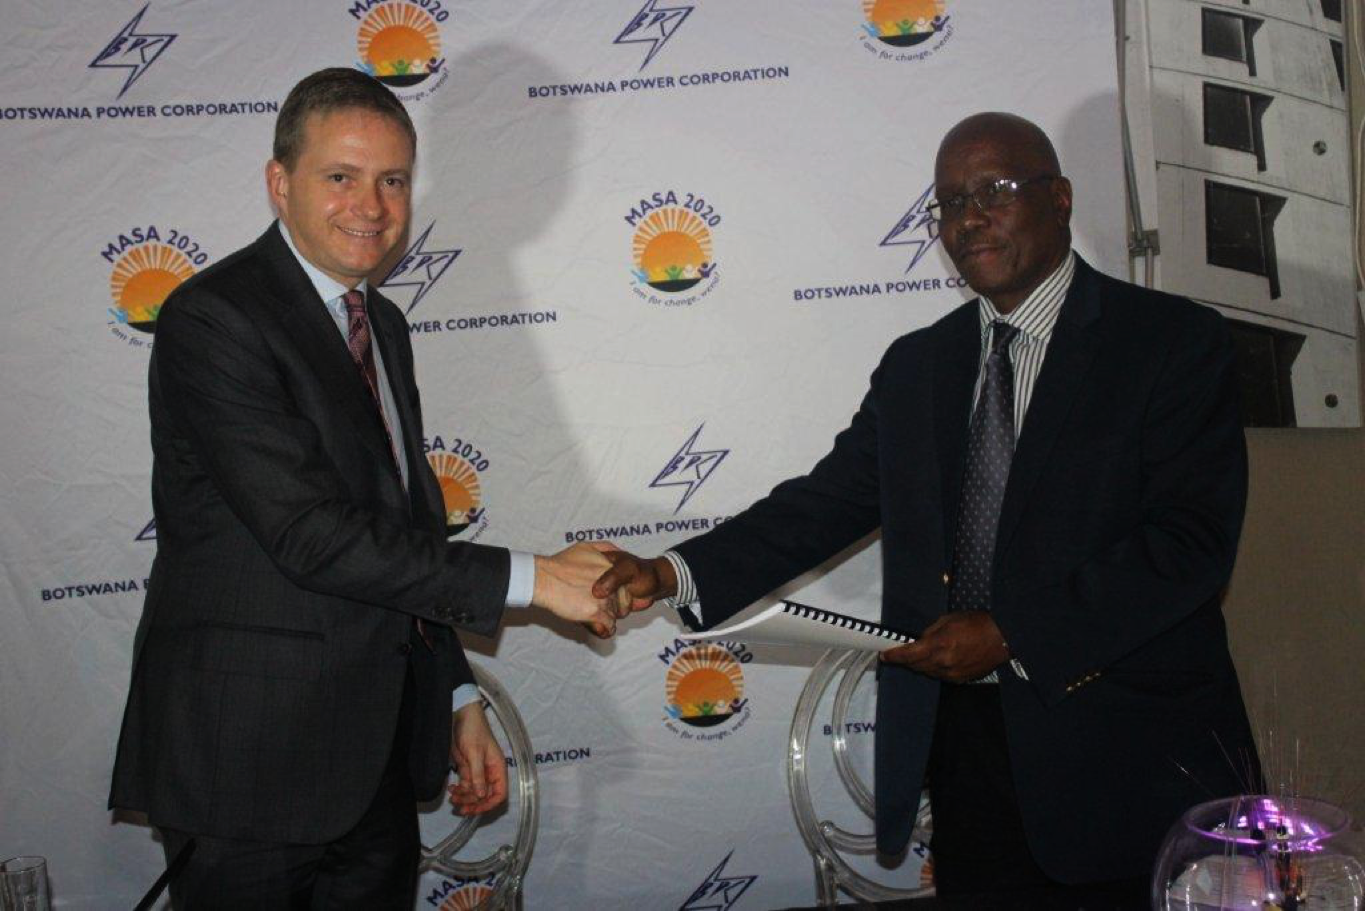 BPC and Liquid Telecom enter into joint venture